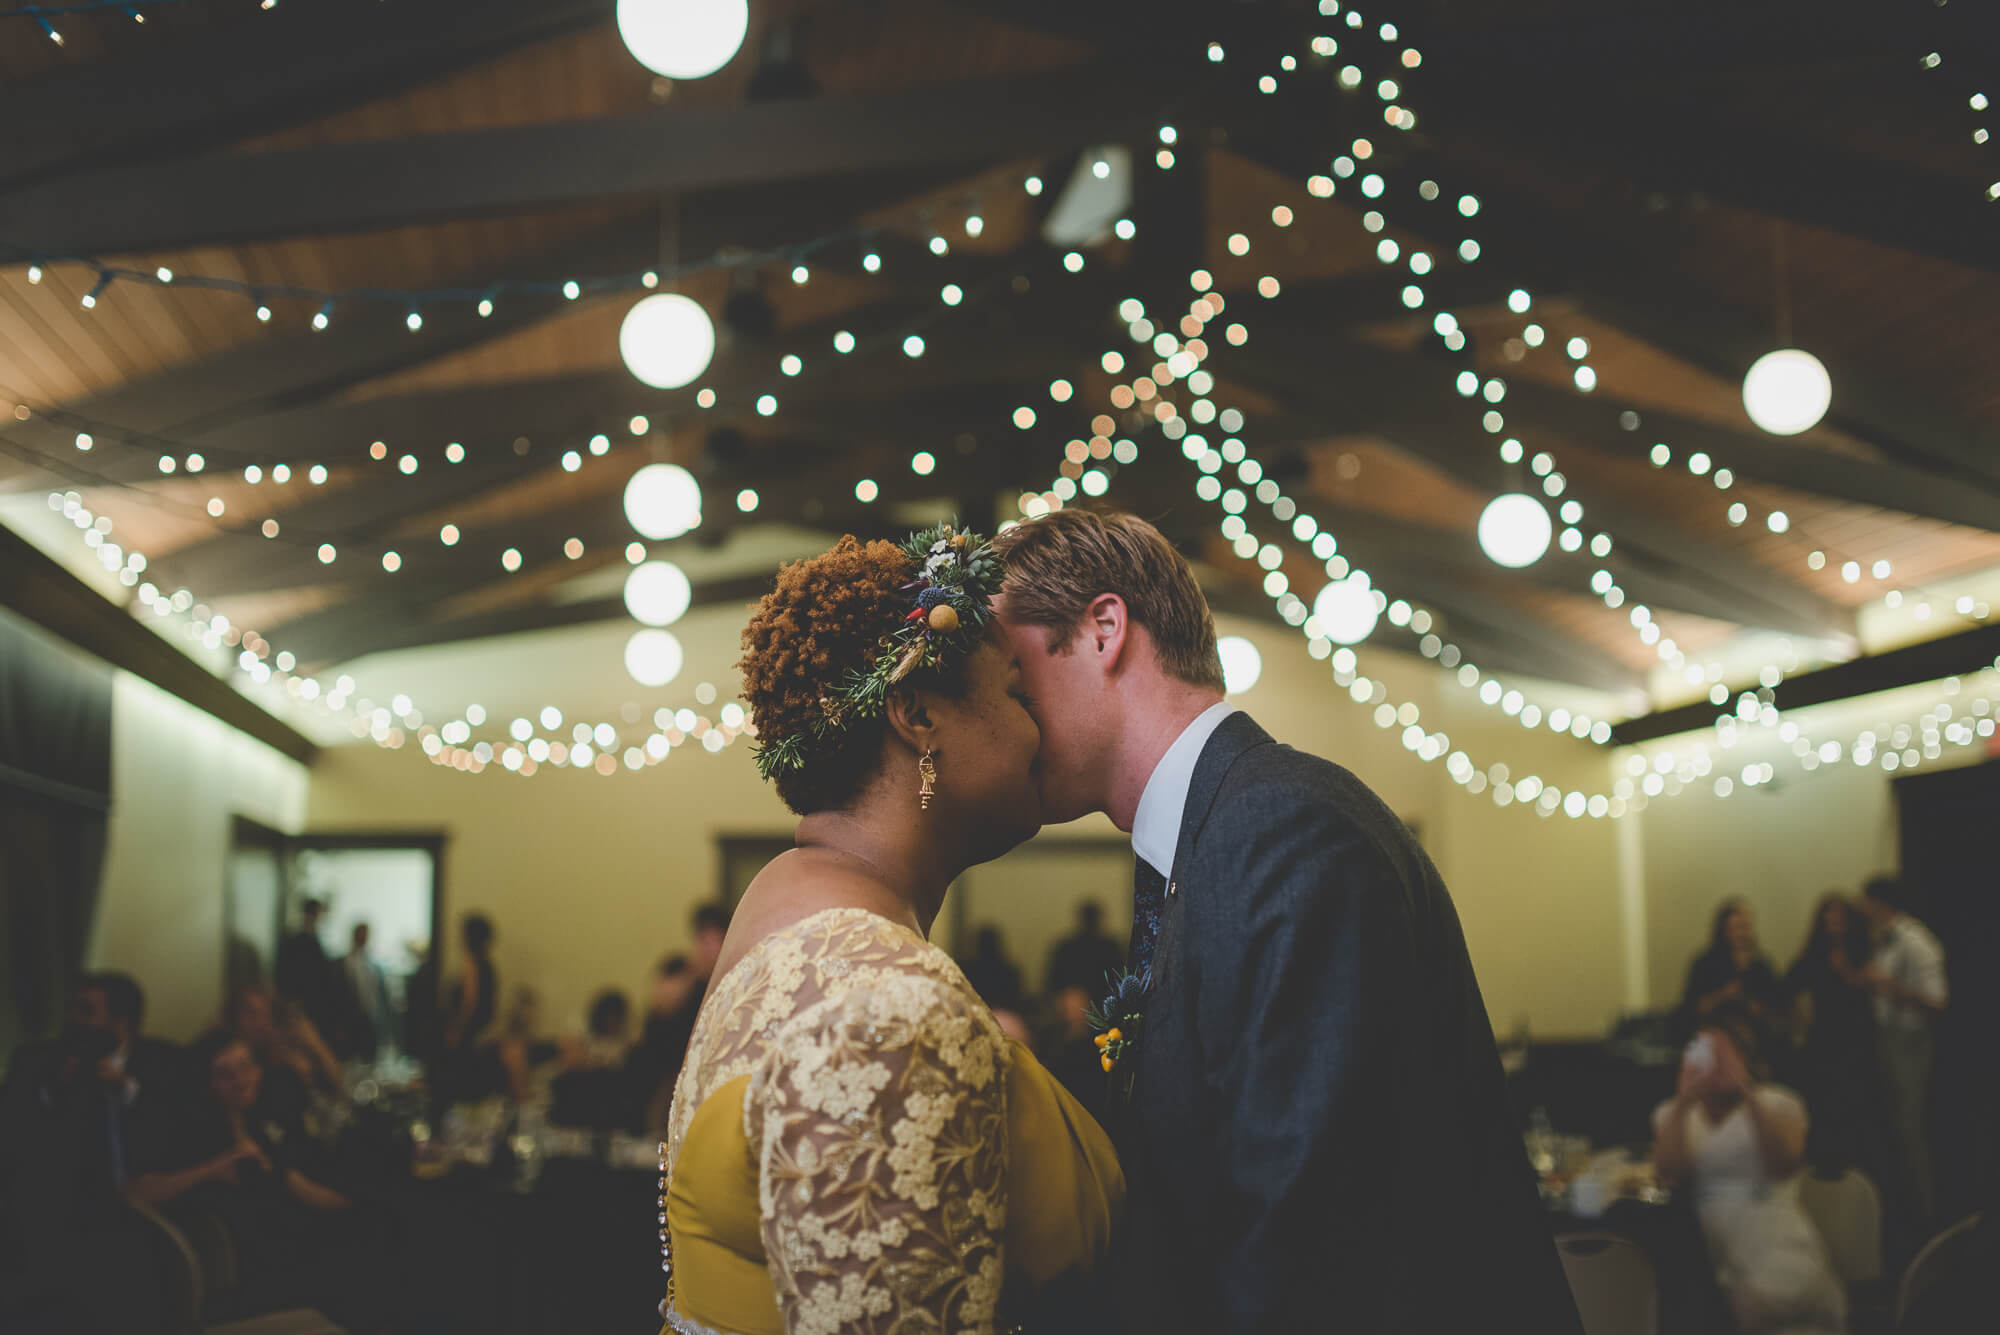 bride and groom dancing cheek to cheek during first dance with twinkle lights hanging from wooden ceiling beams